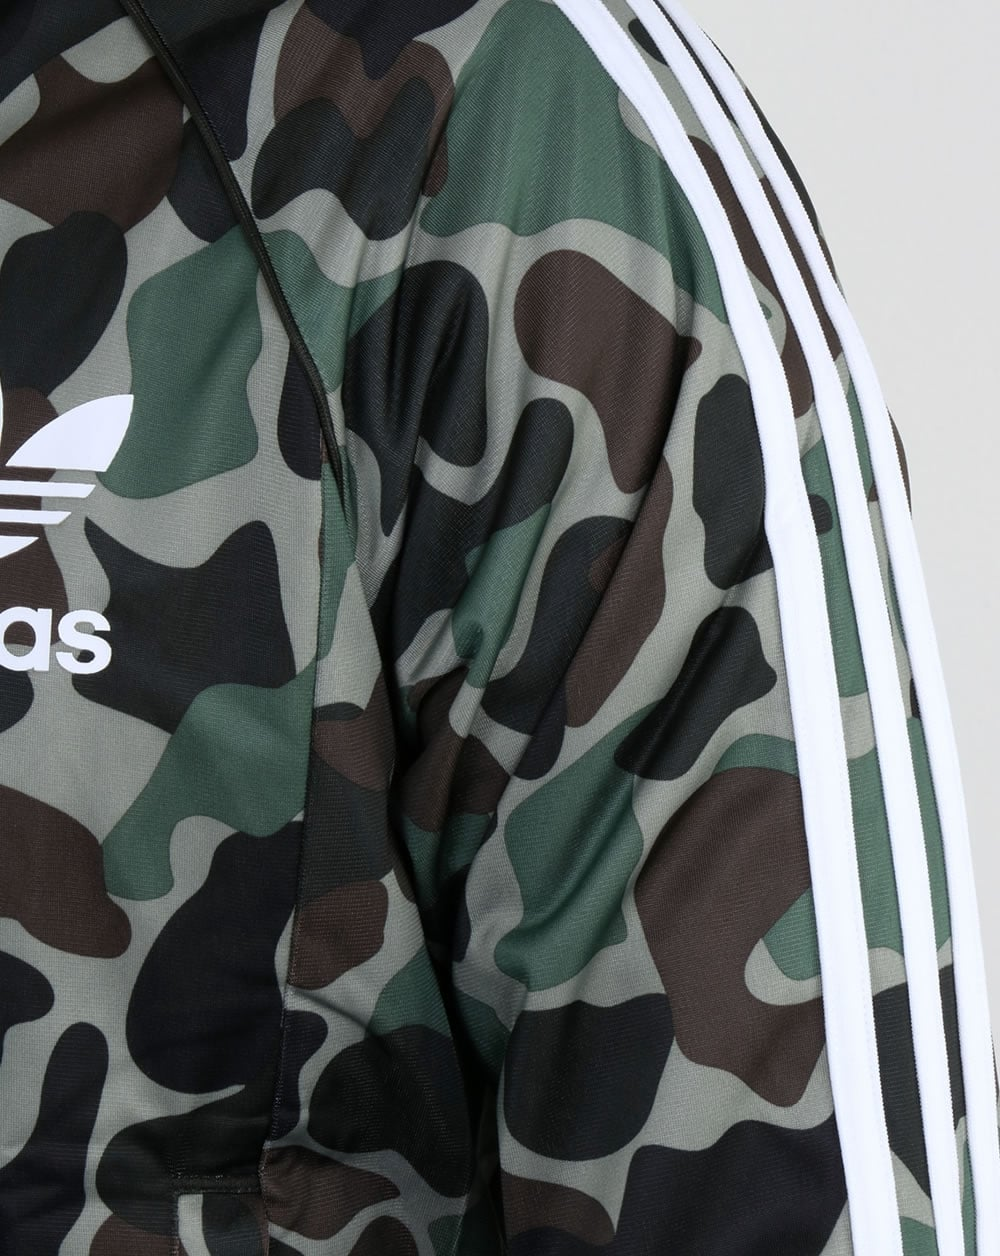 e1f1f2846c5 adidas-originals-camo-superstar-track-top-p8878-58463_image.jpg